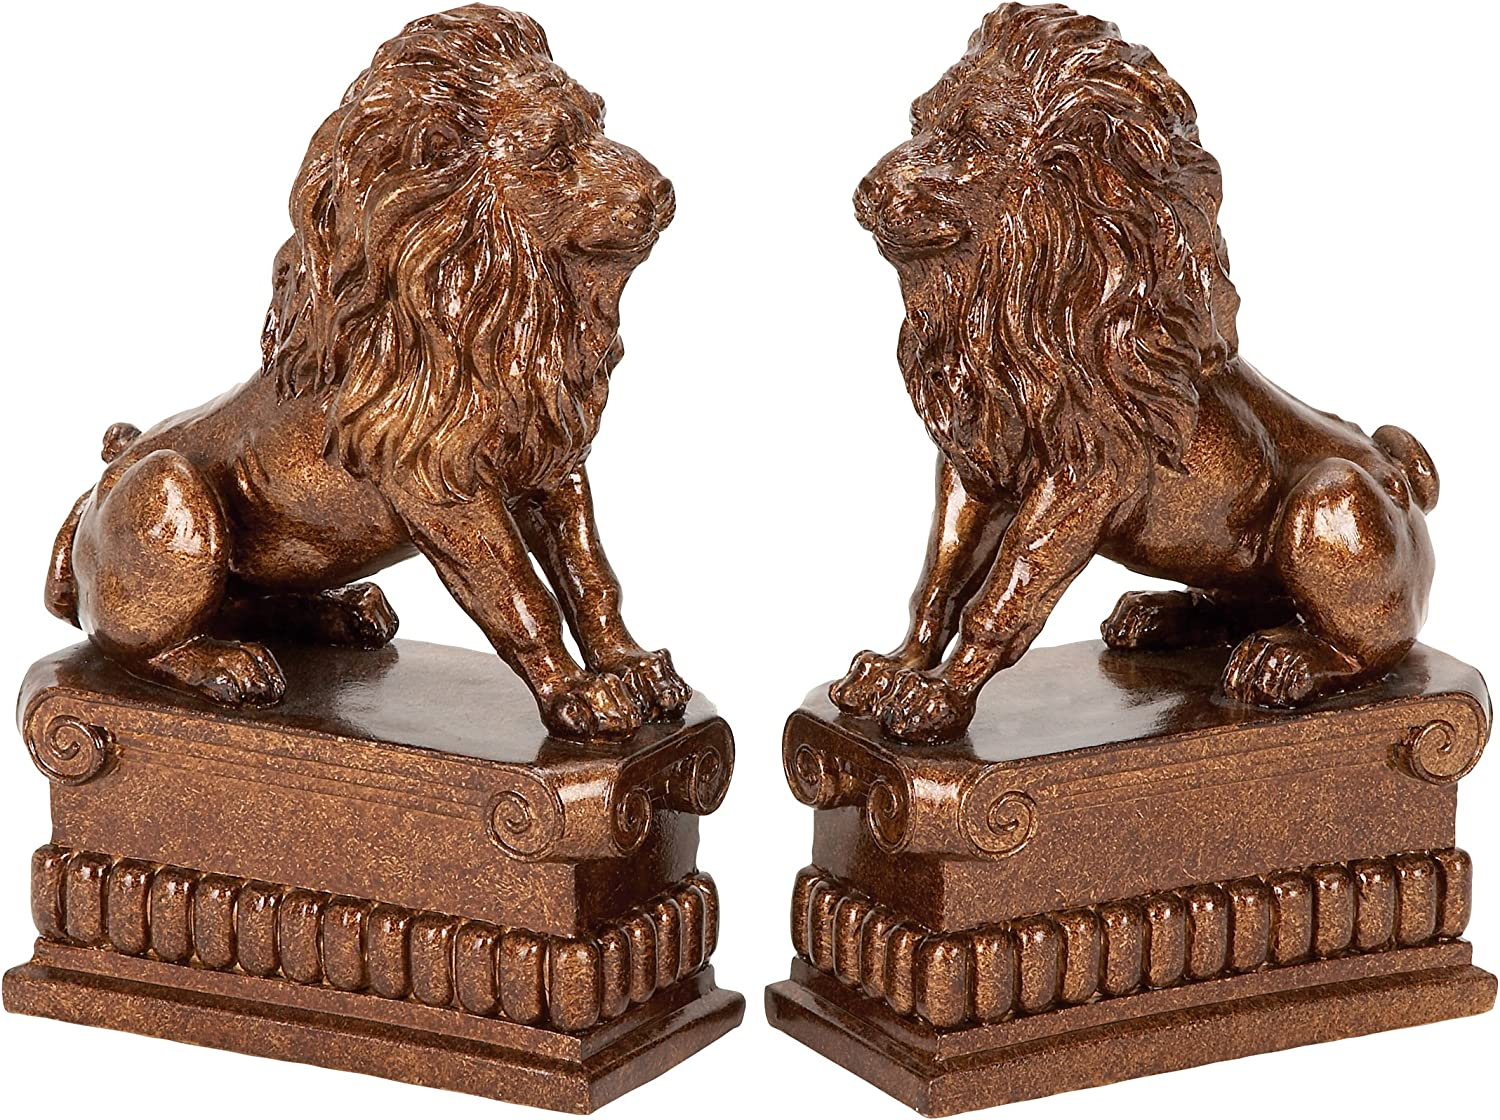 Deco 79 Polystone Lion Bookend Pair Unique Table and Shelf Decor with Utility